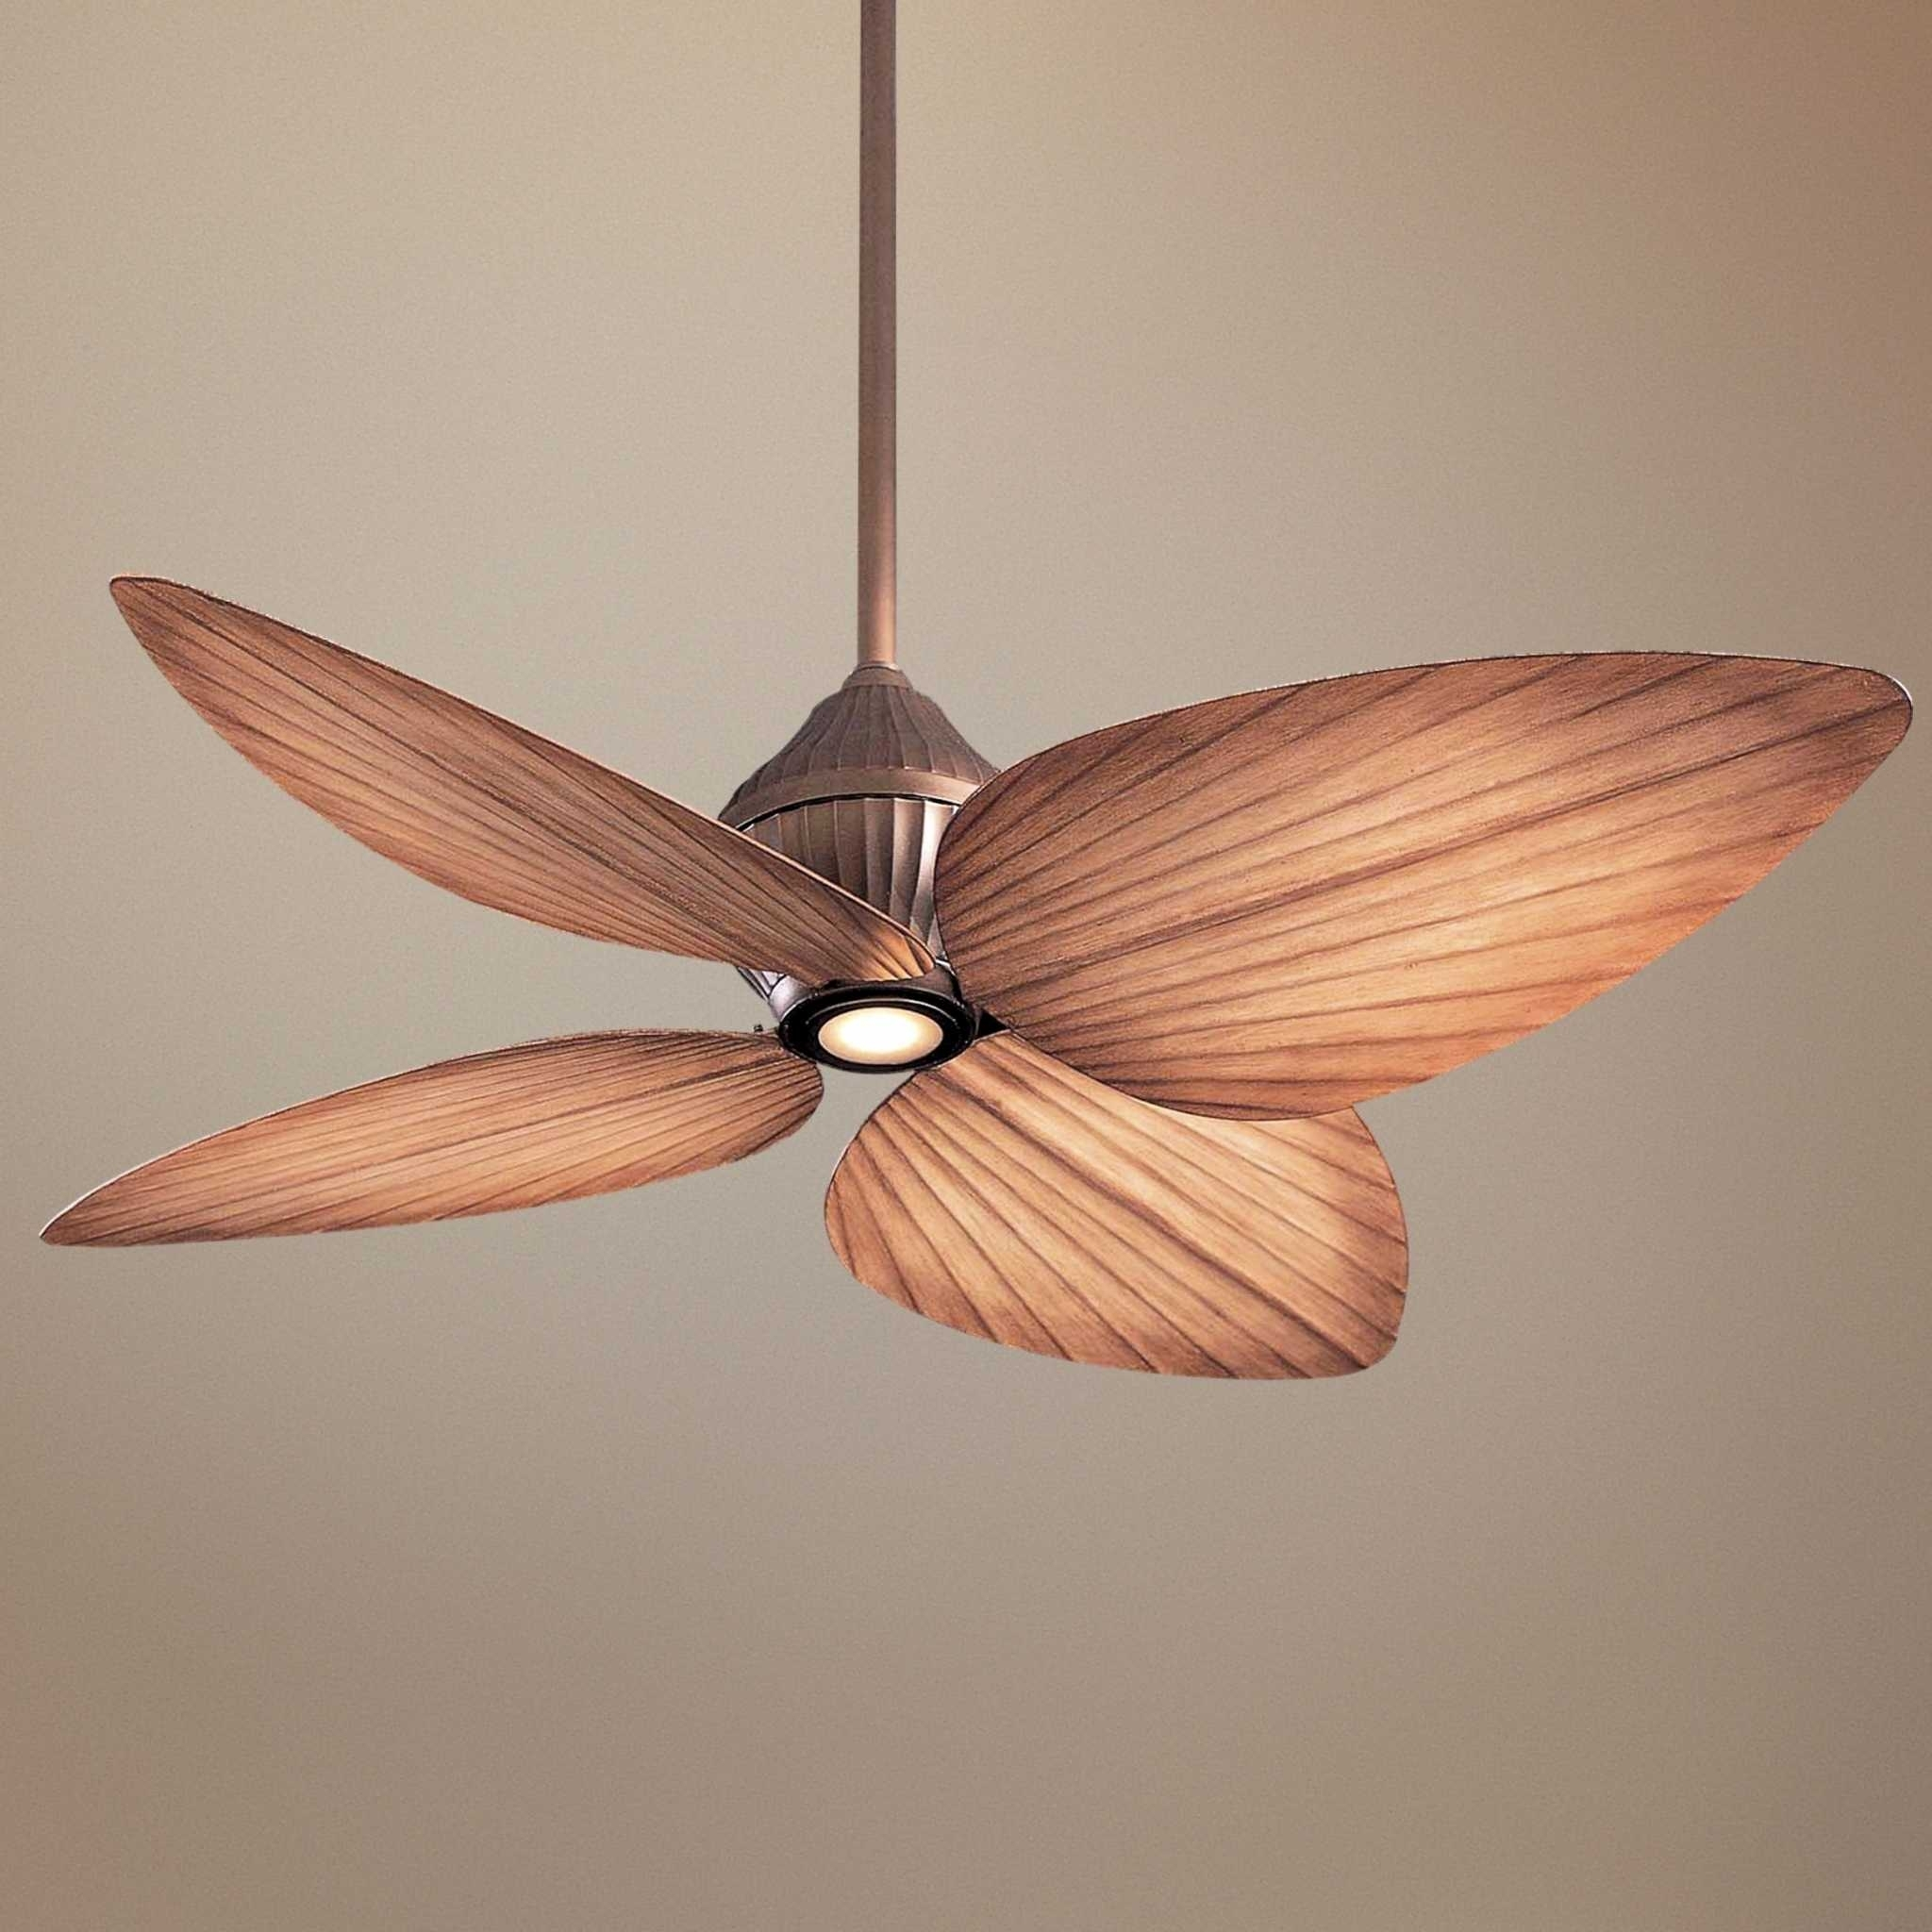 Ceiling Fan ~ Ceiling Fan Tropical Outdoor Fans With Lights Aspen Pertaining To Outdoor Ceiling Fans With Tropical Lights (#5 of 15)